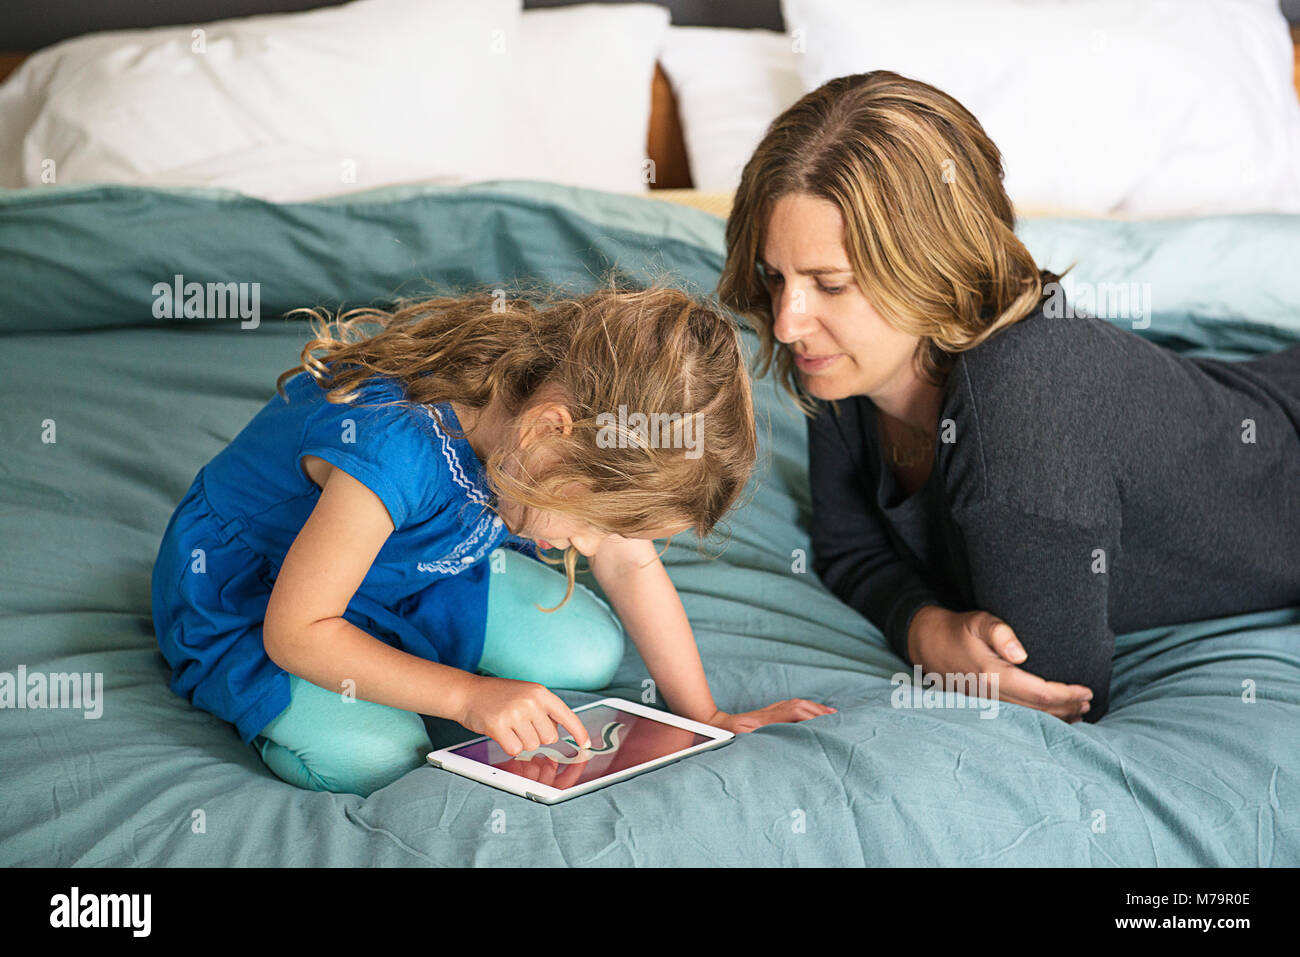 A woman watching her daughter learn how to write using an ipad mini. - Stock Image